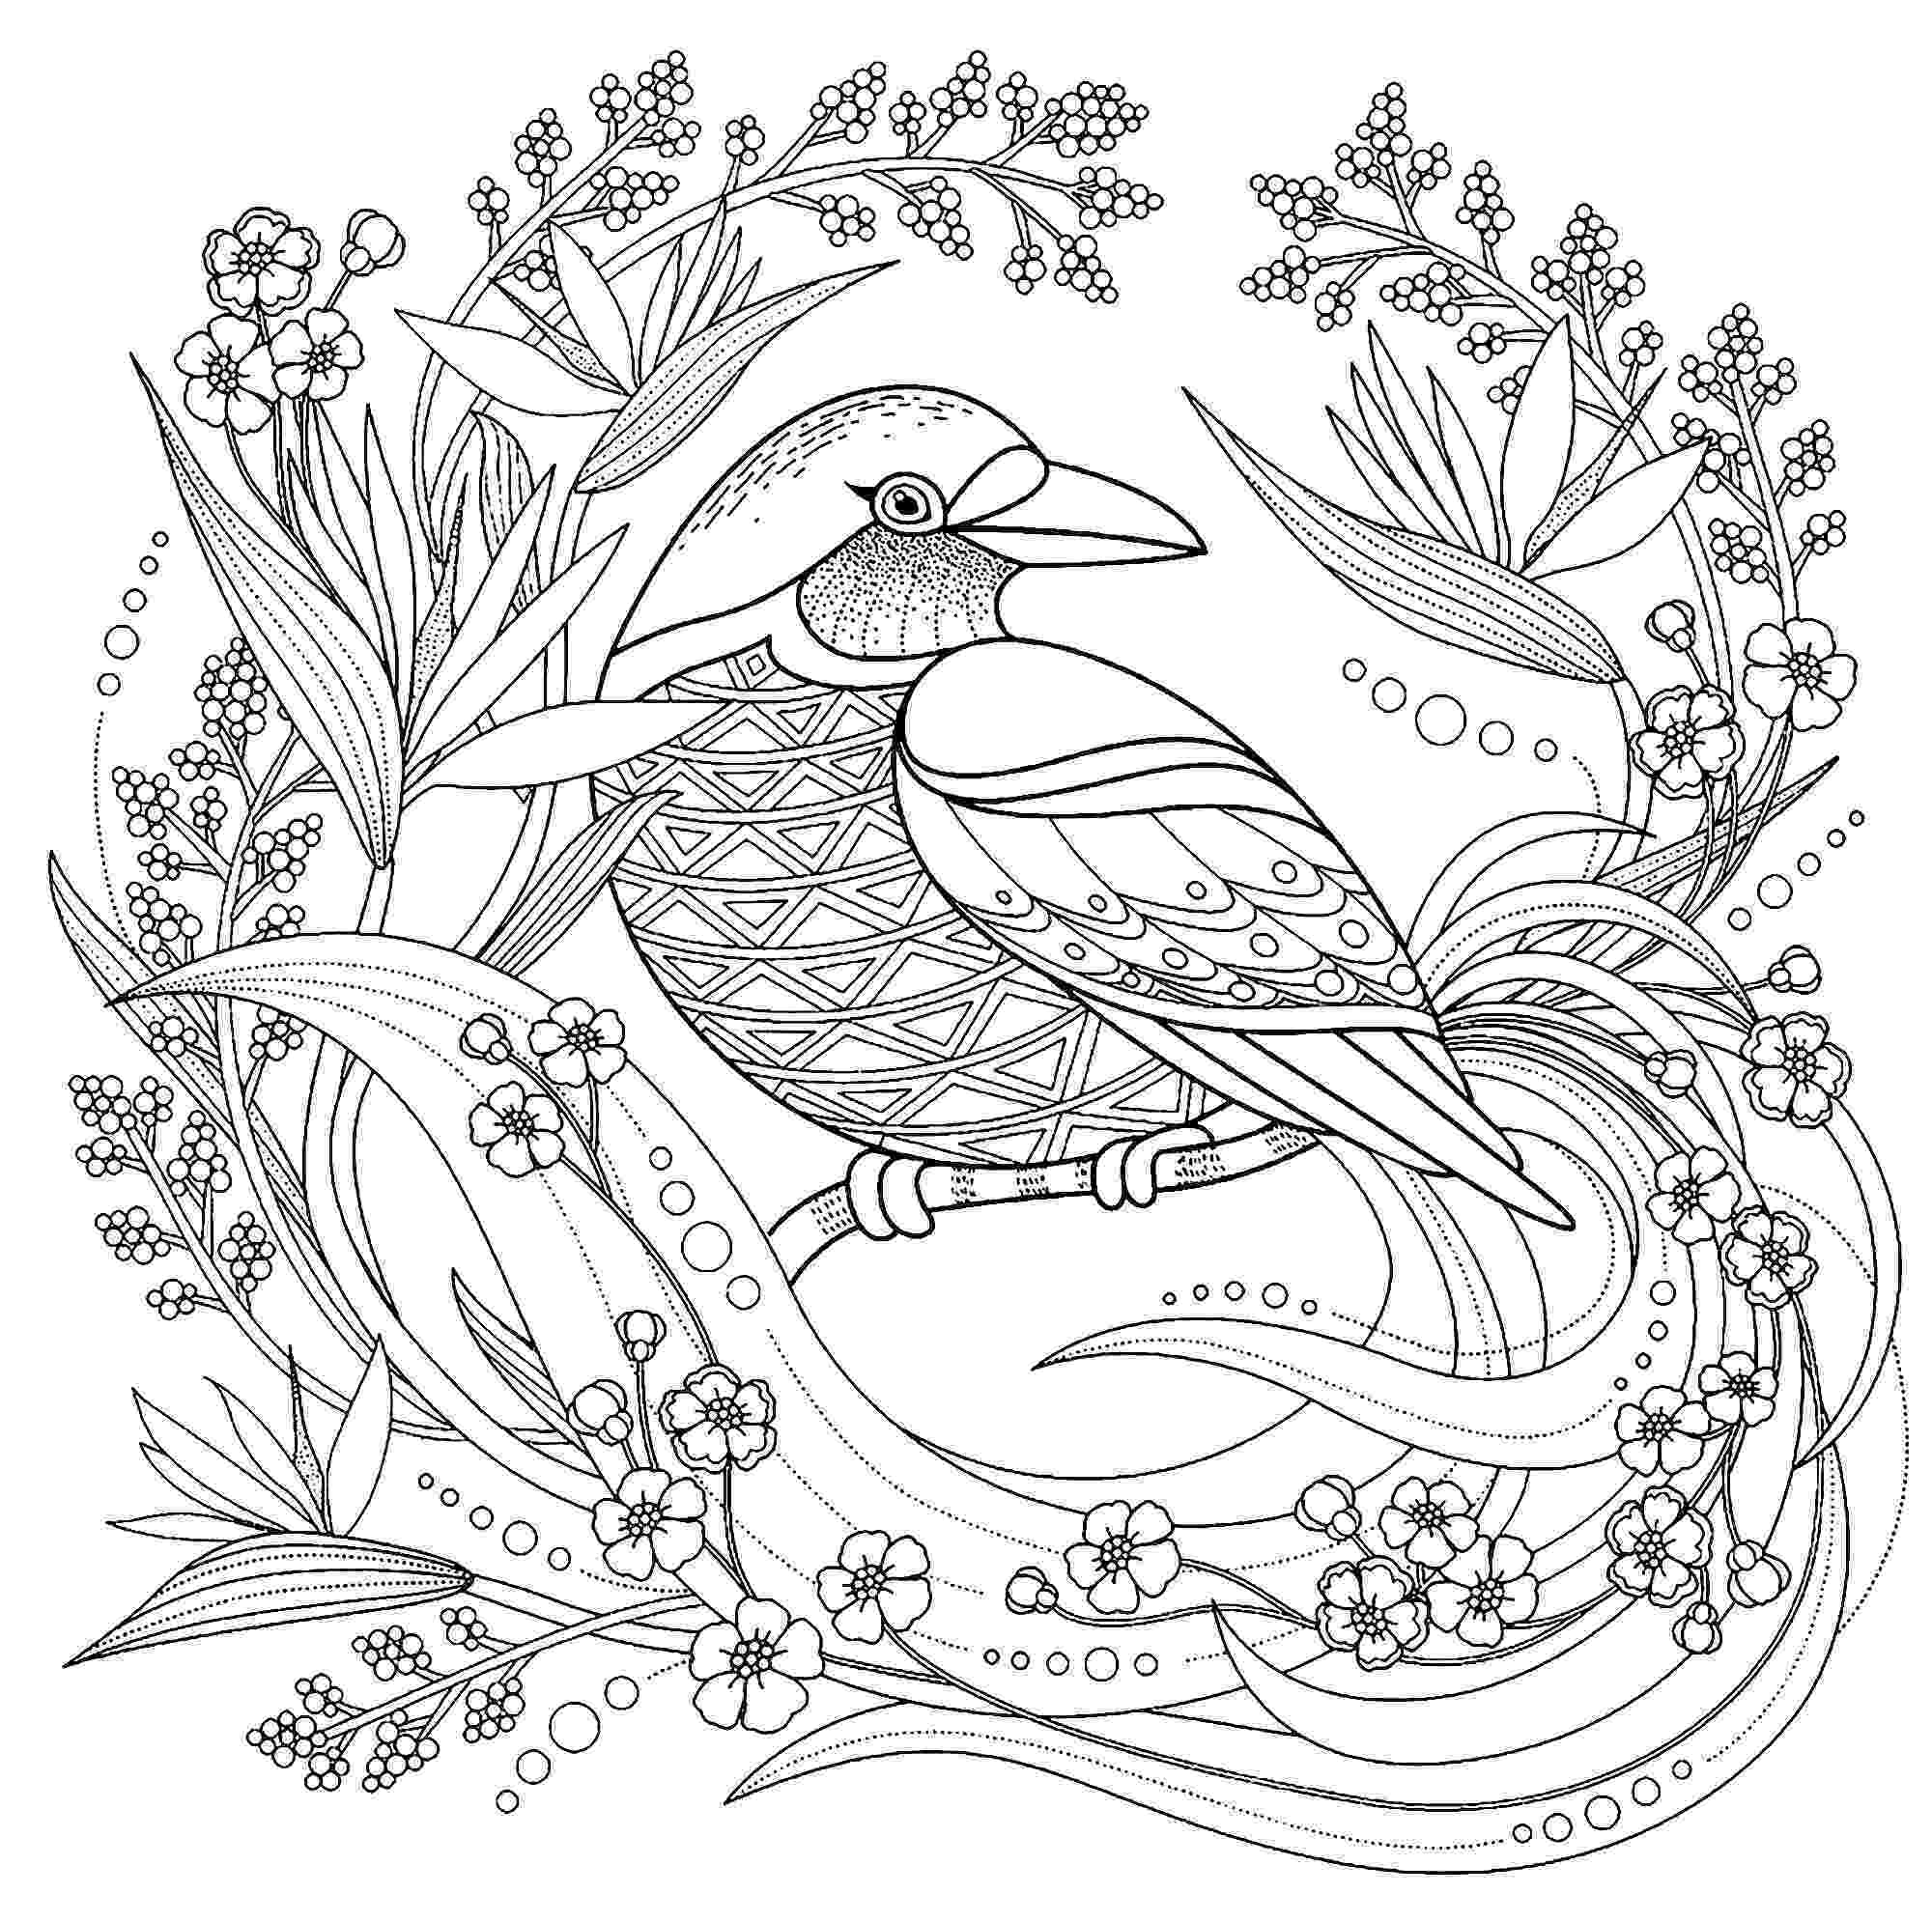 bird coloring images coloring sheets for burgess chapters homeschooling coloring images bird